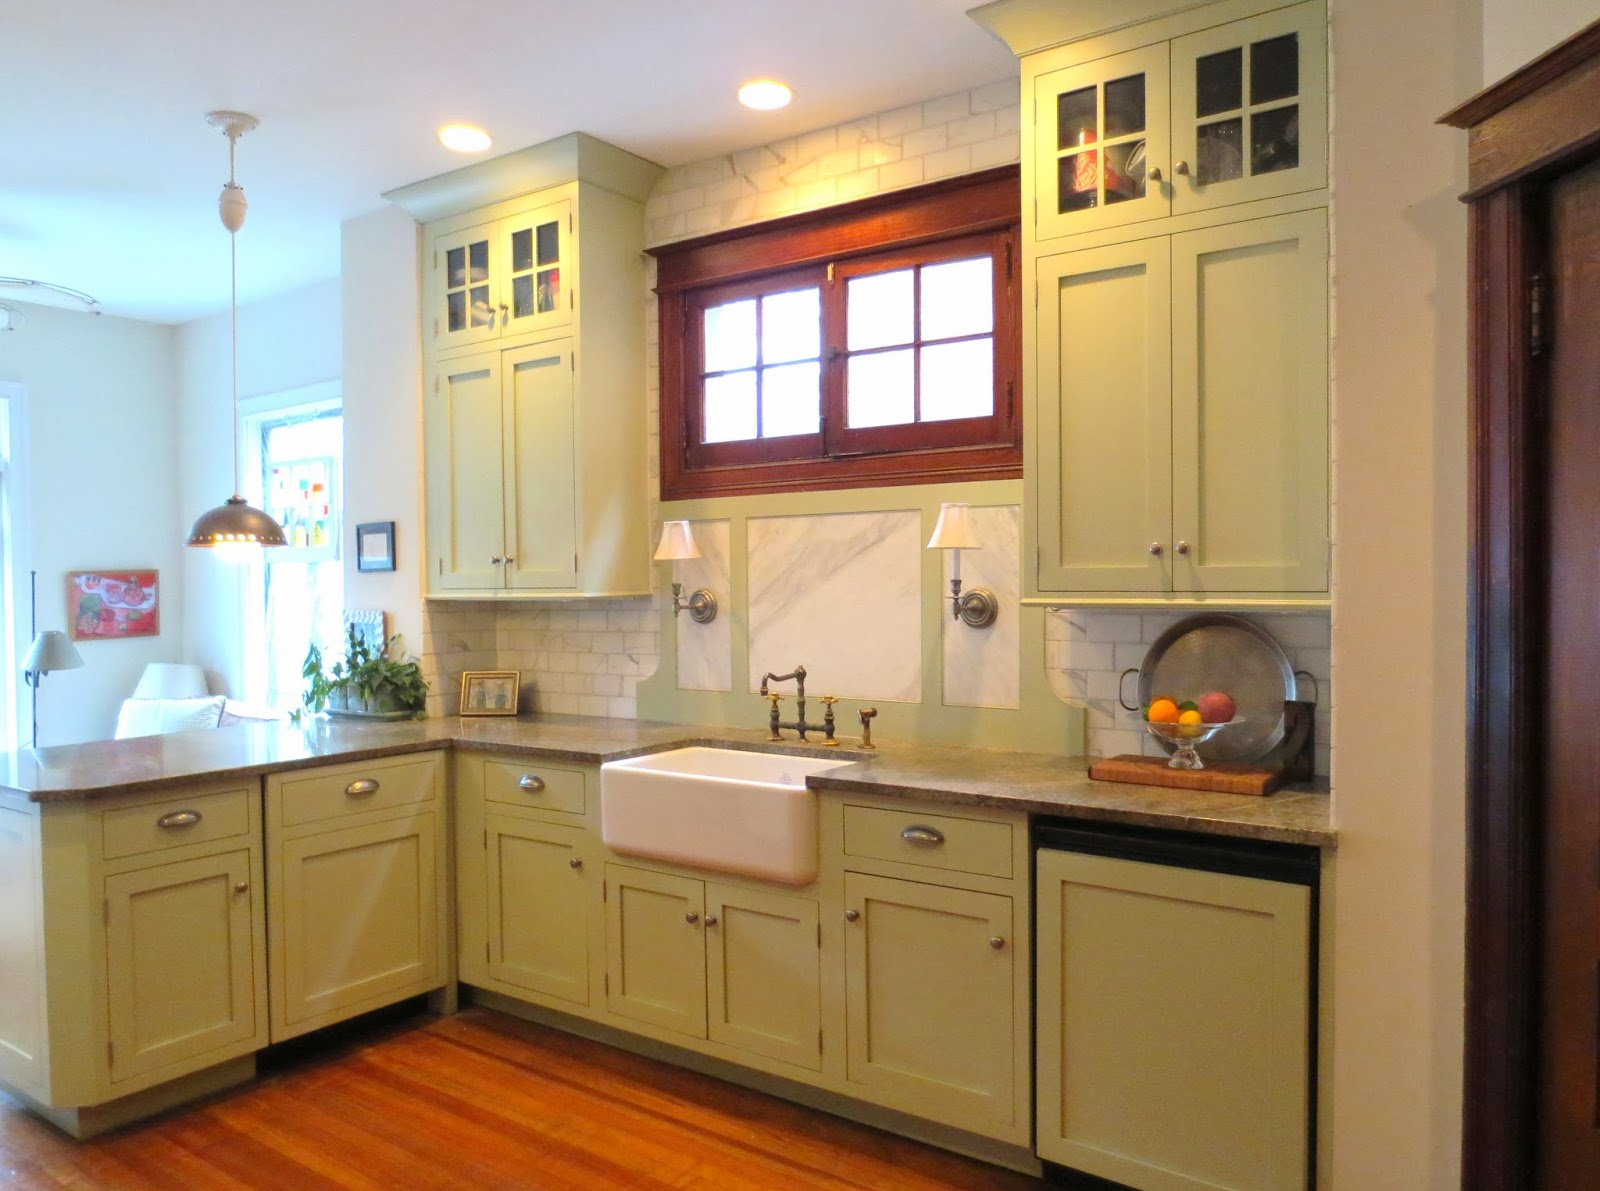 Timeless Kitchen Design Part 2